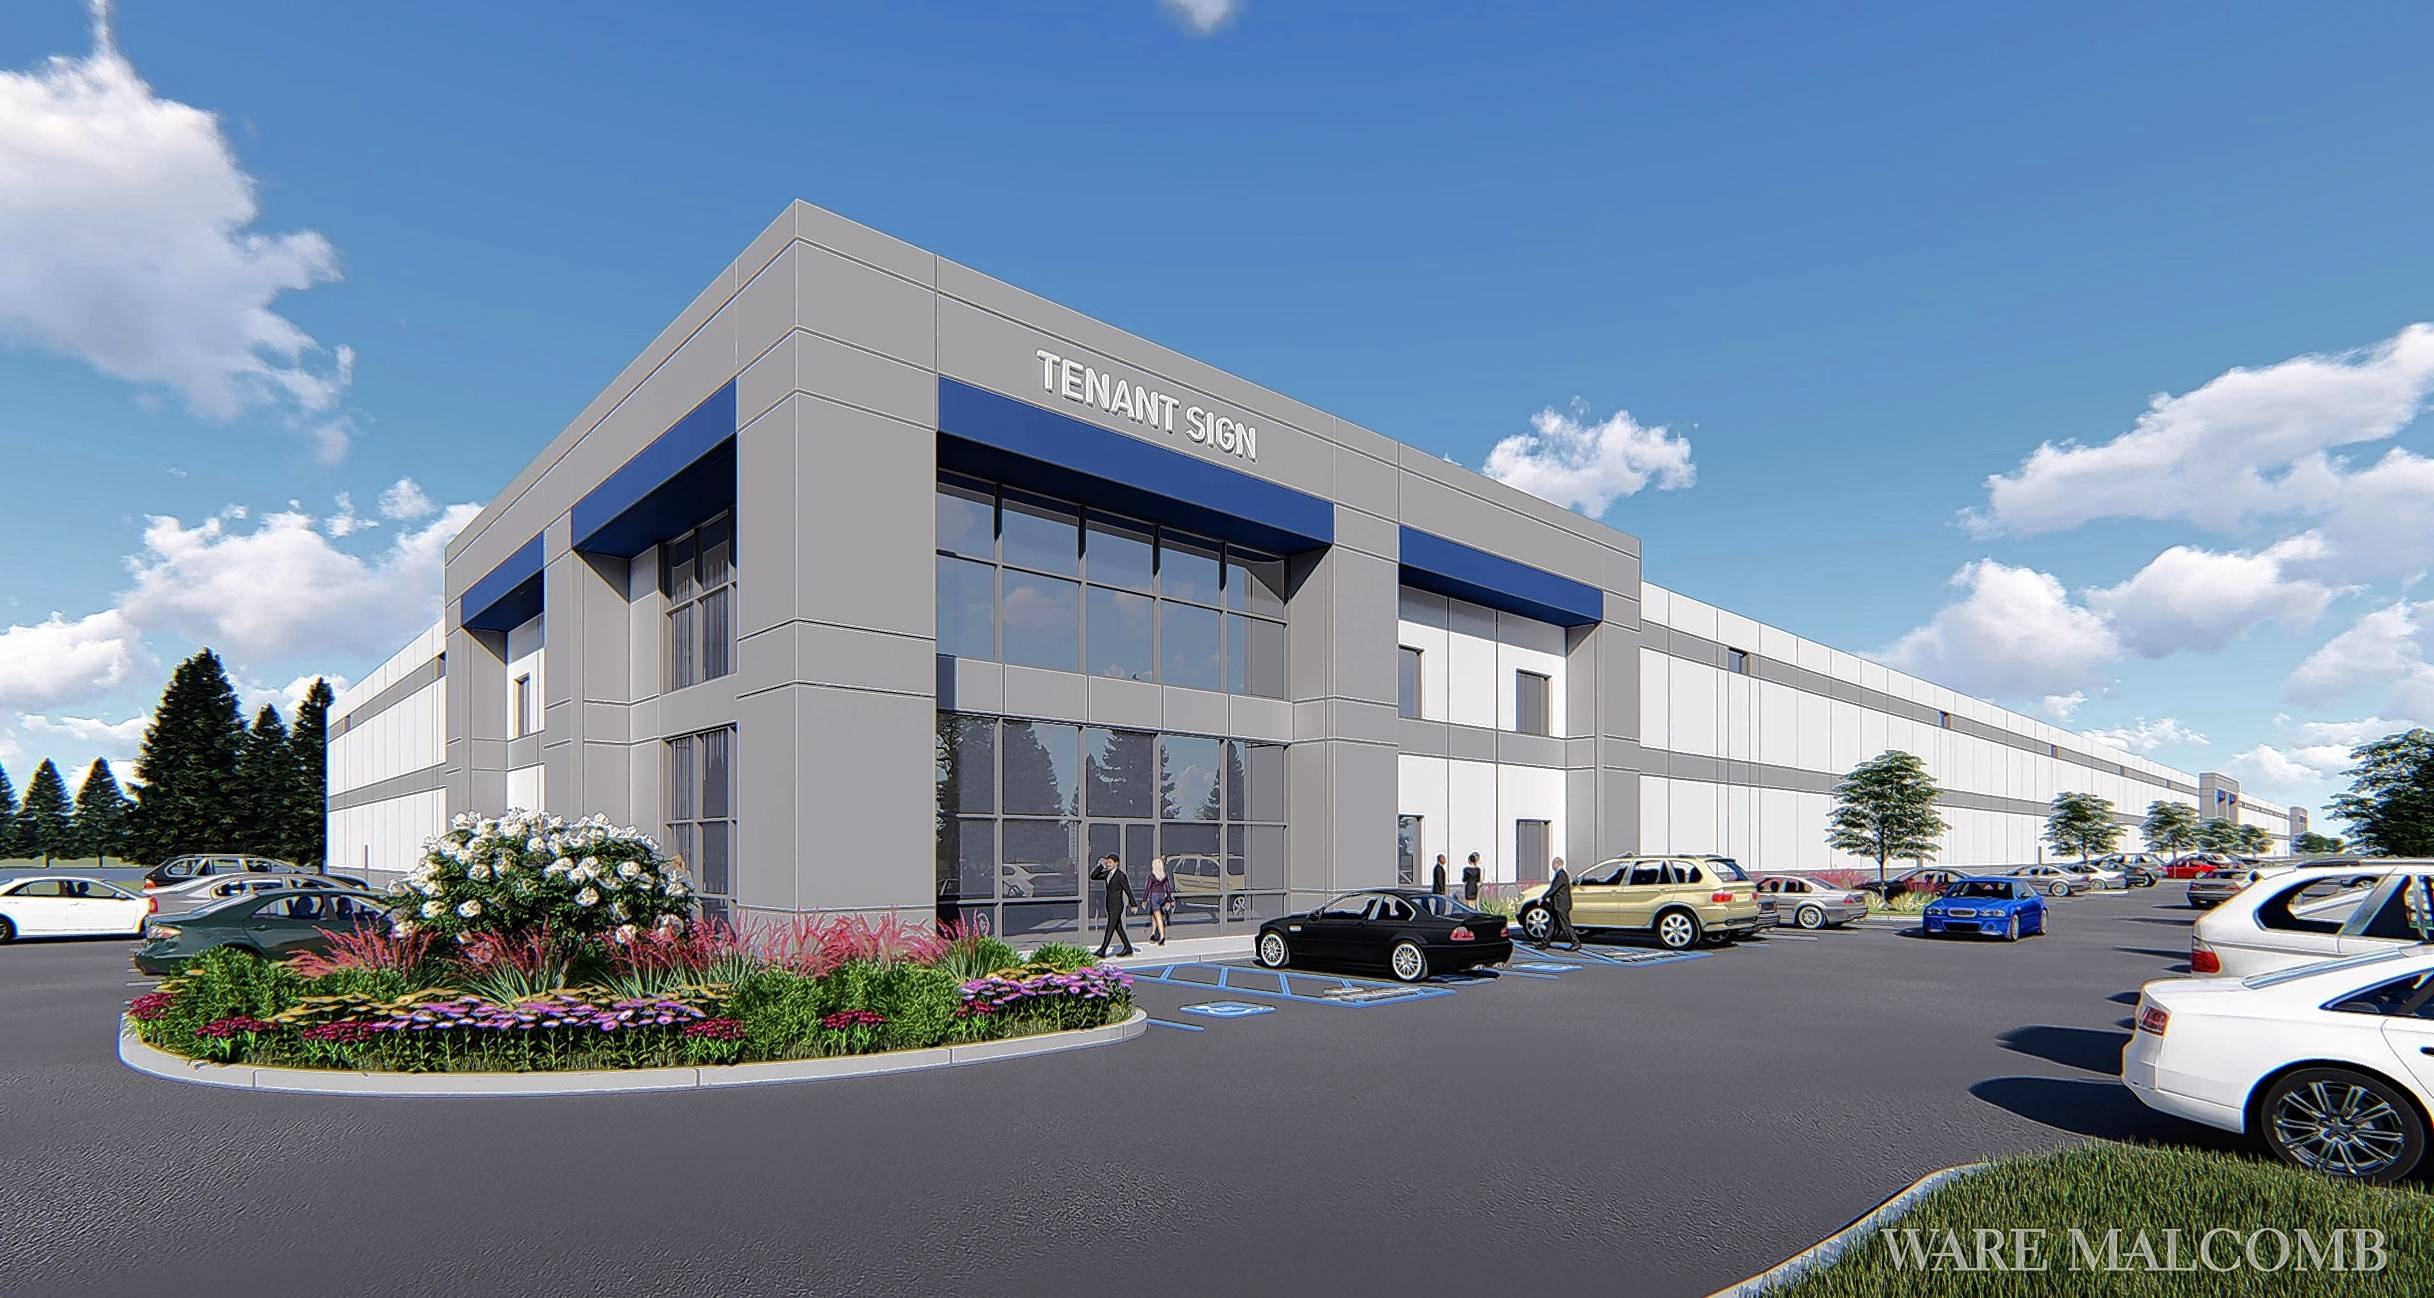 A rendering shows the 265,550-square-foot industrial building under construction at the southwest corner of North Avenue and Morton Road in Winfield. Developers expect the facility to bring 210 to 250 jobs.